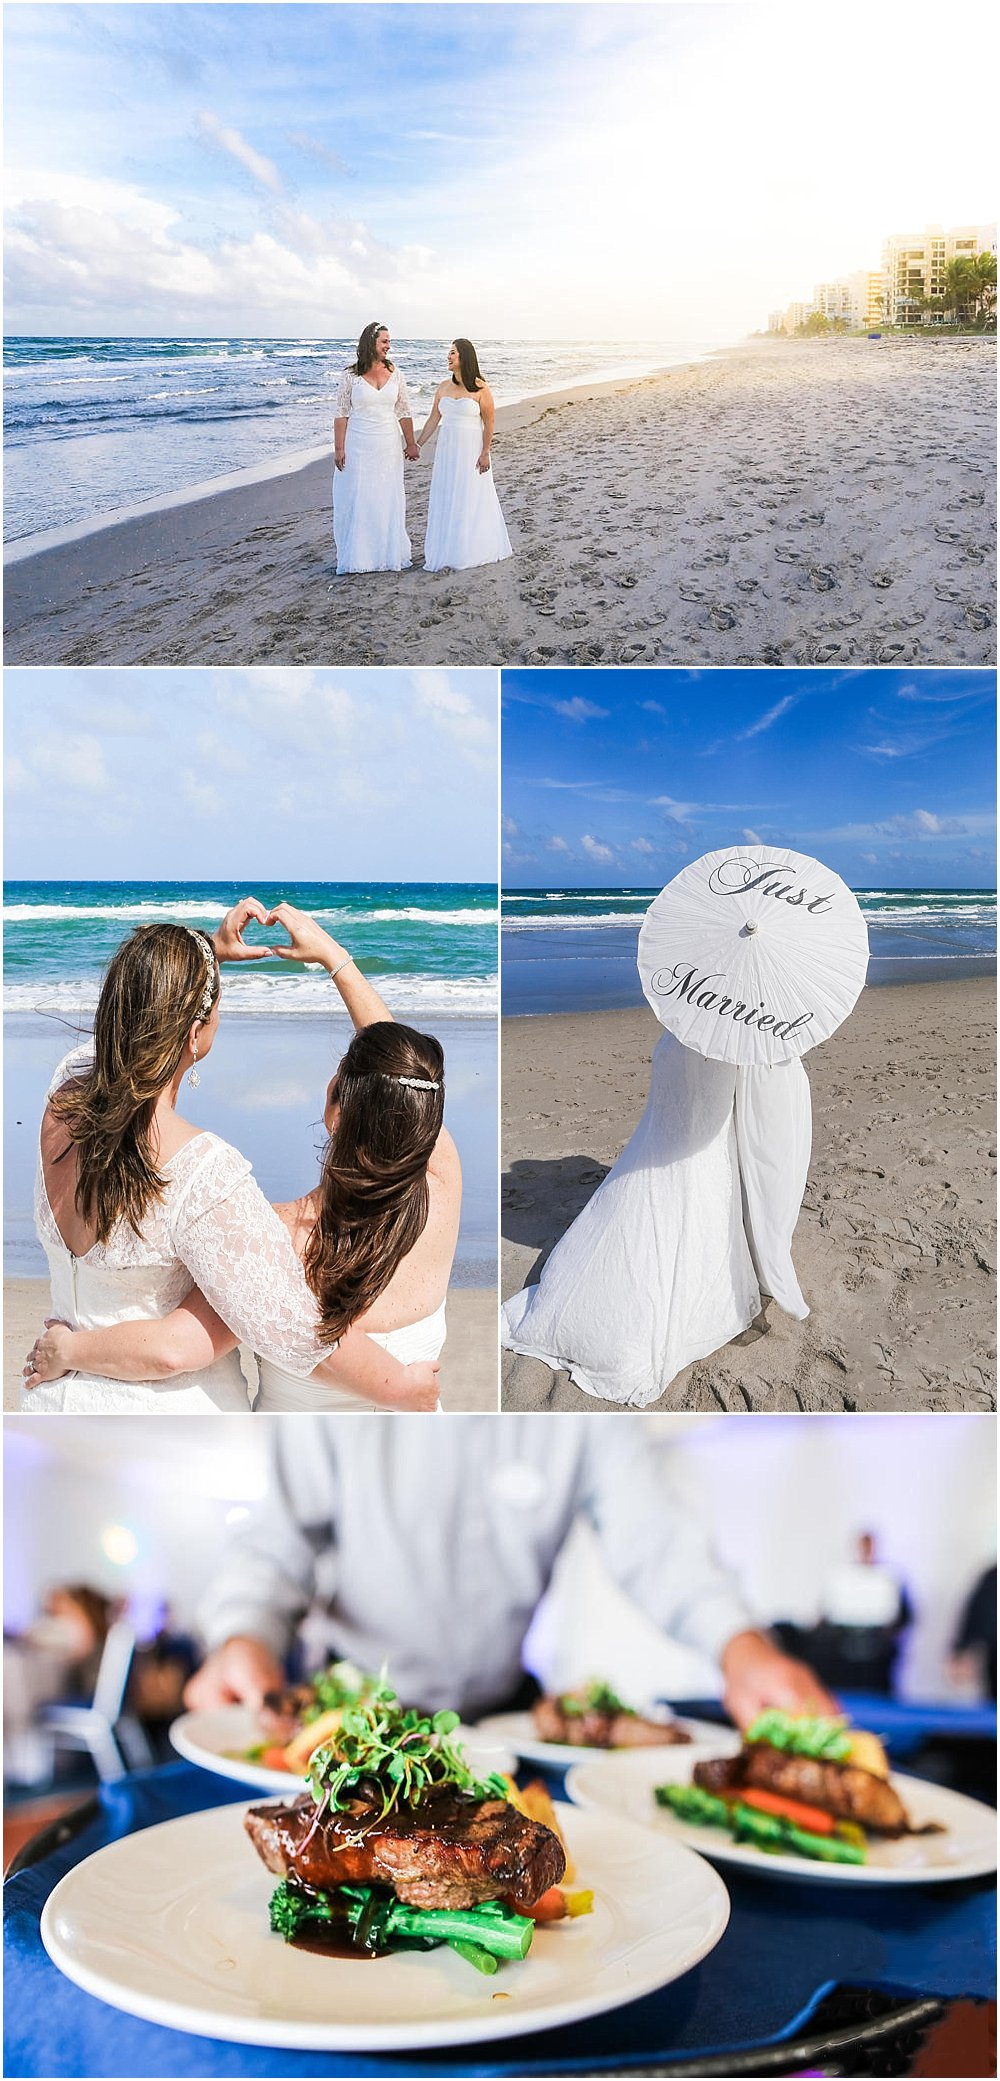 Beach Wedding Venue_Delray Sands Resort_Scribbled Moments Photography